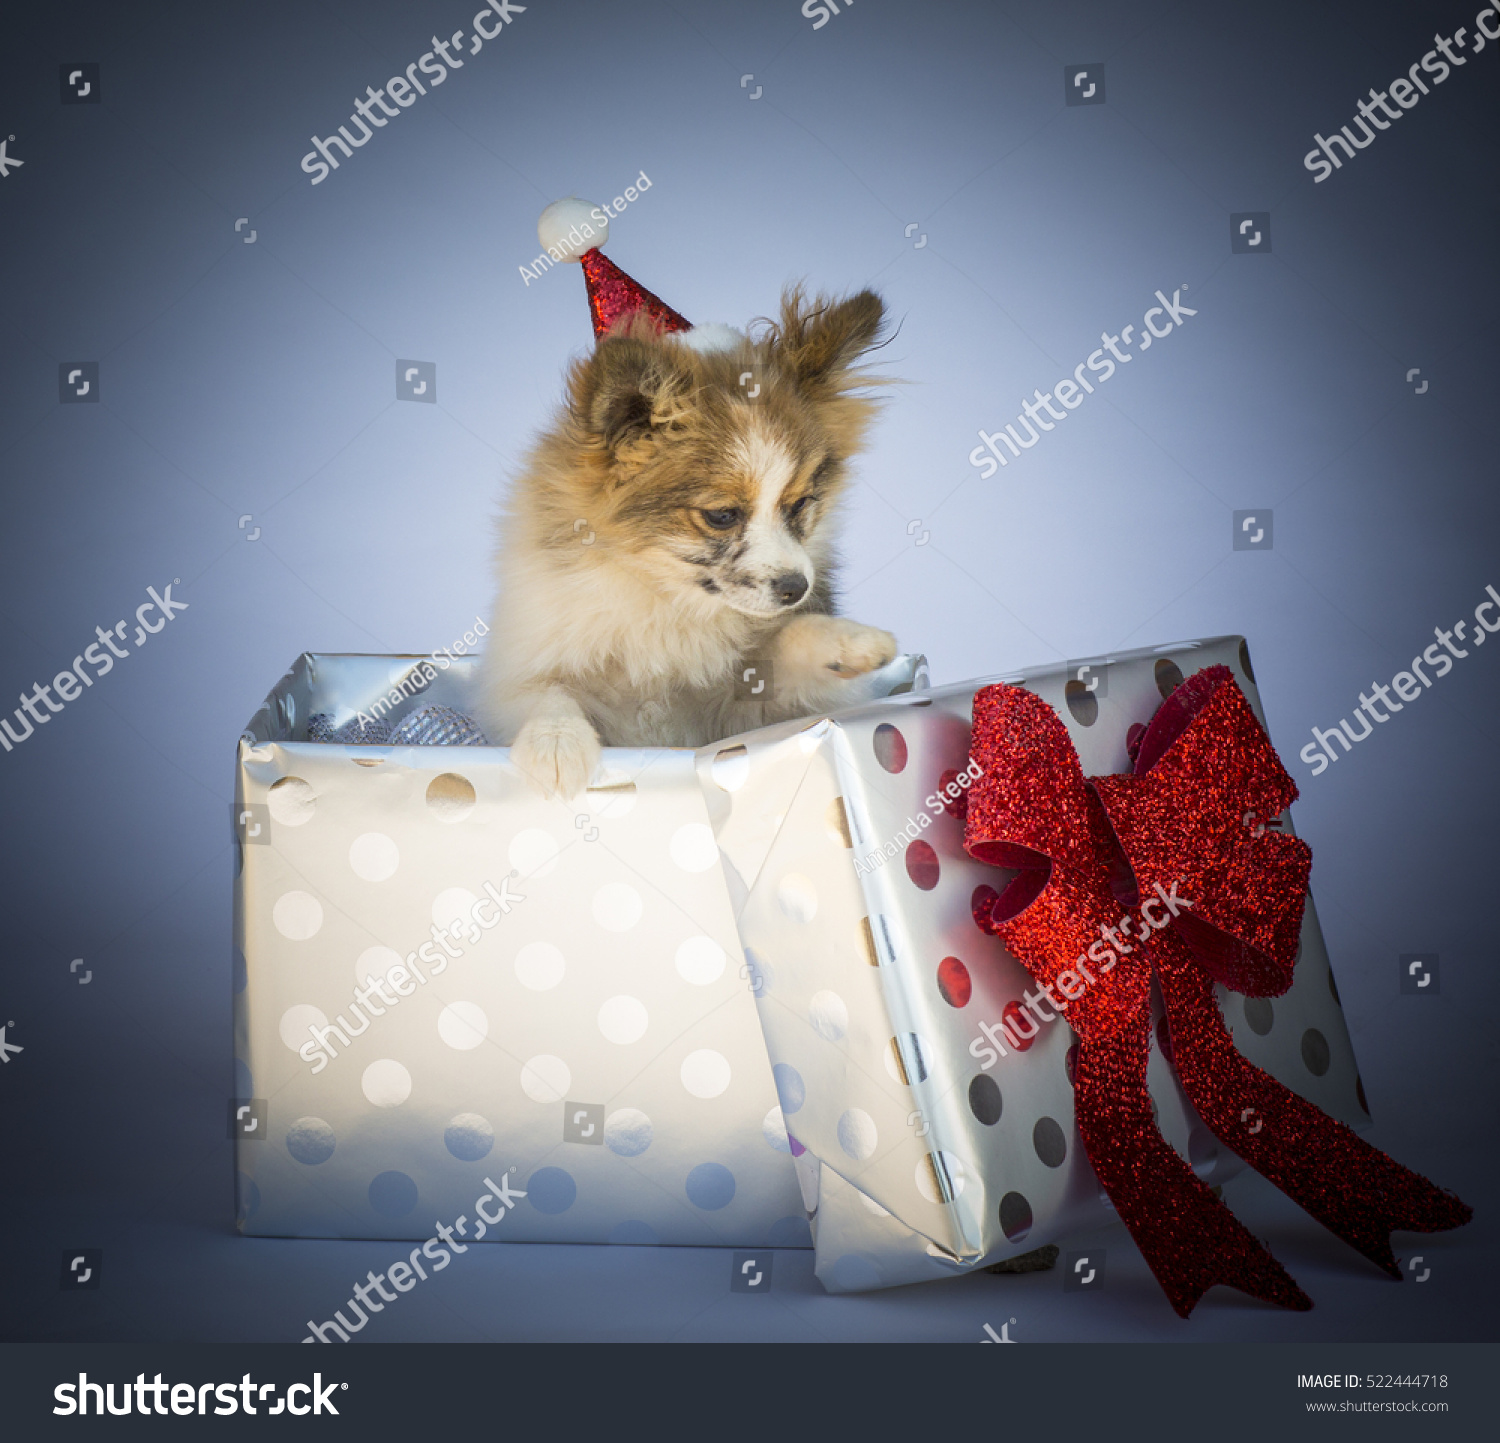 Cute Pomeranian Puppy As A Christmas Gift